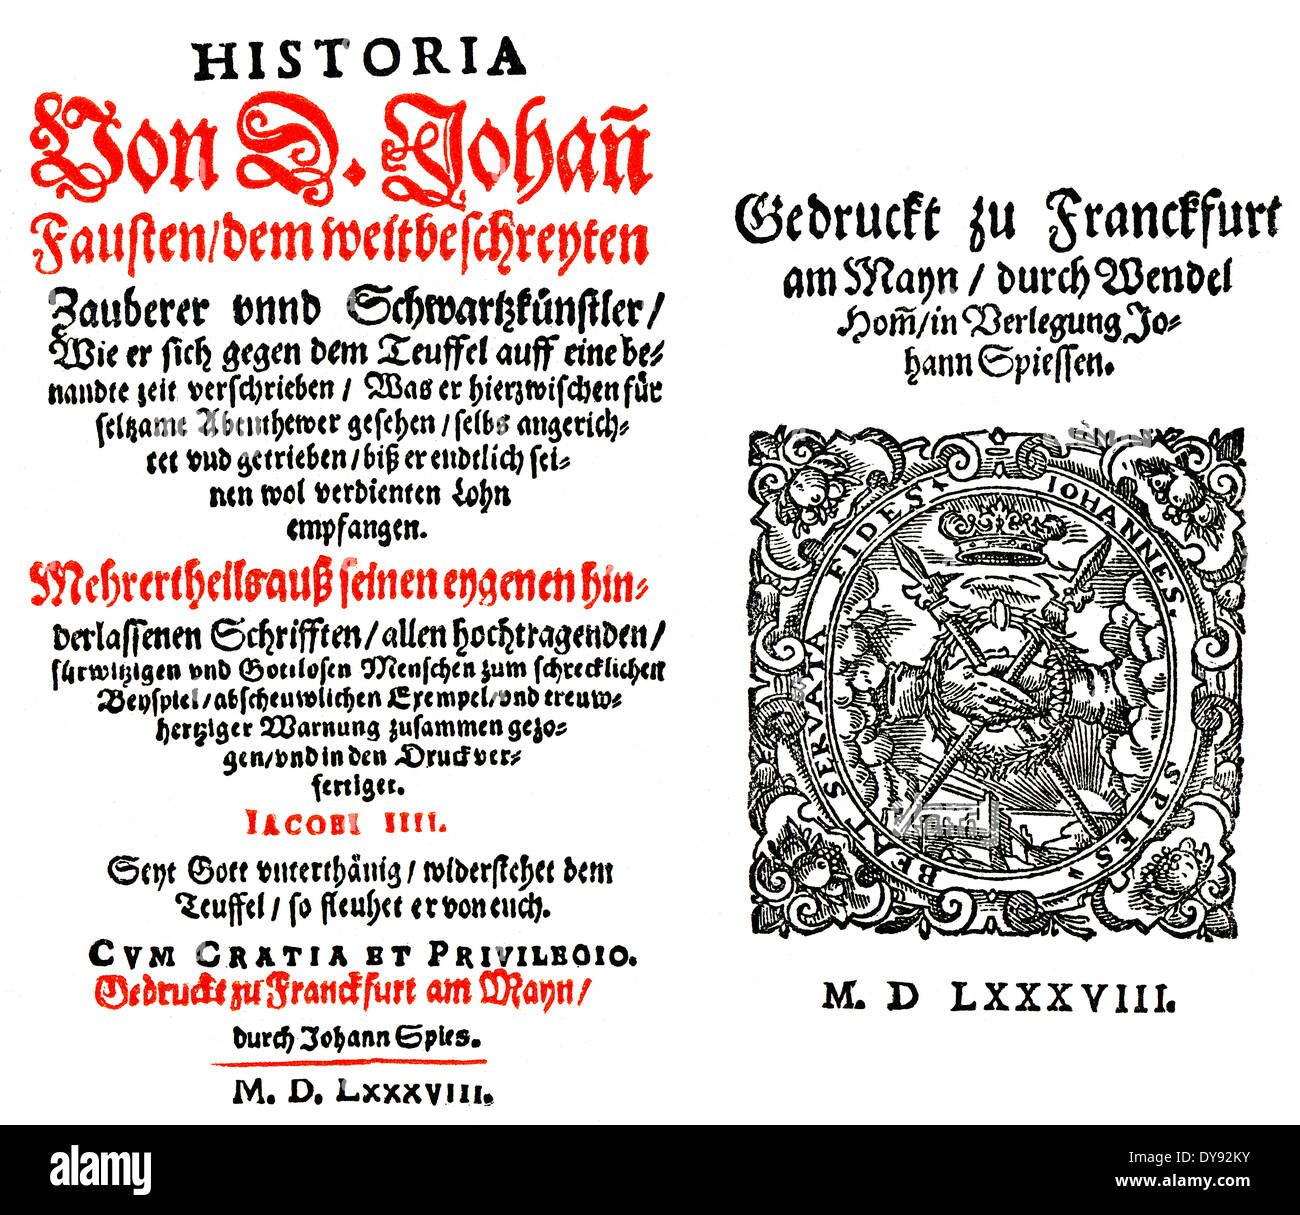 facsimile of the Frontispiece and end of the Historia von D. Johann Fausten, published in 1587 by Johan Spies - Stock Image